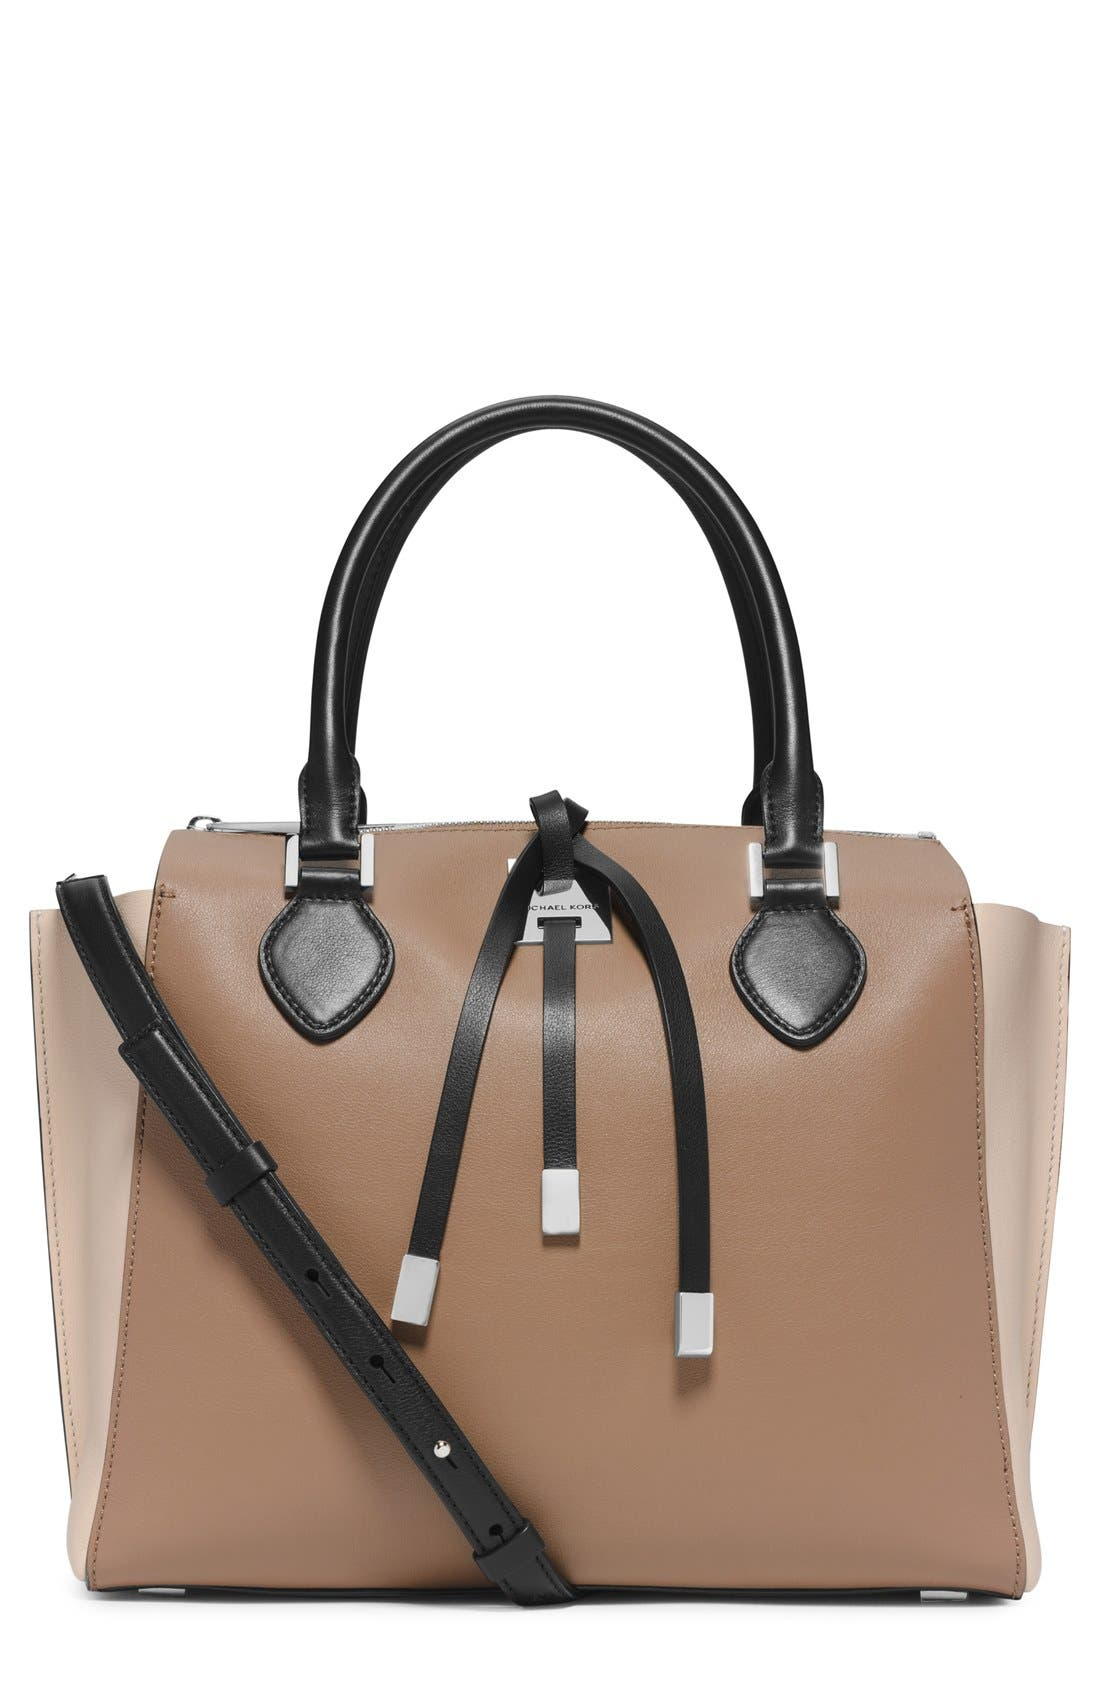 Alternate Image 1 Selected - Michael Kors 'Miranda - Large' Colorblock Leather Satchel